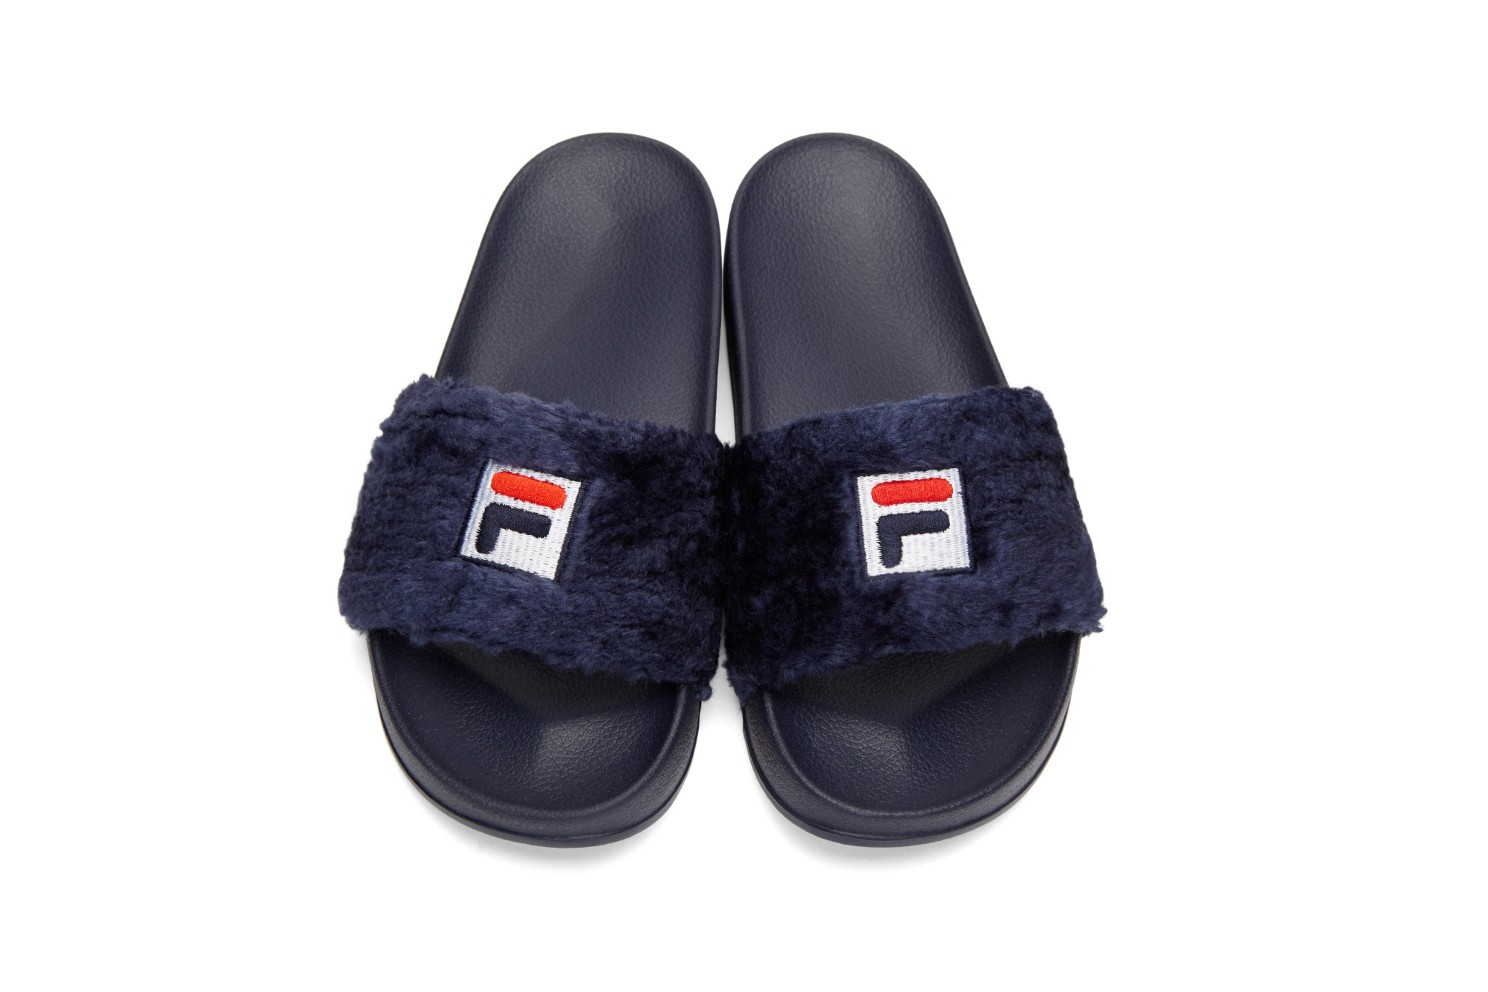 FILA x Baja East Slides In Textile and